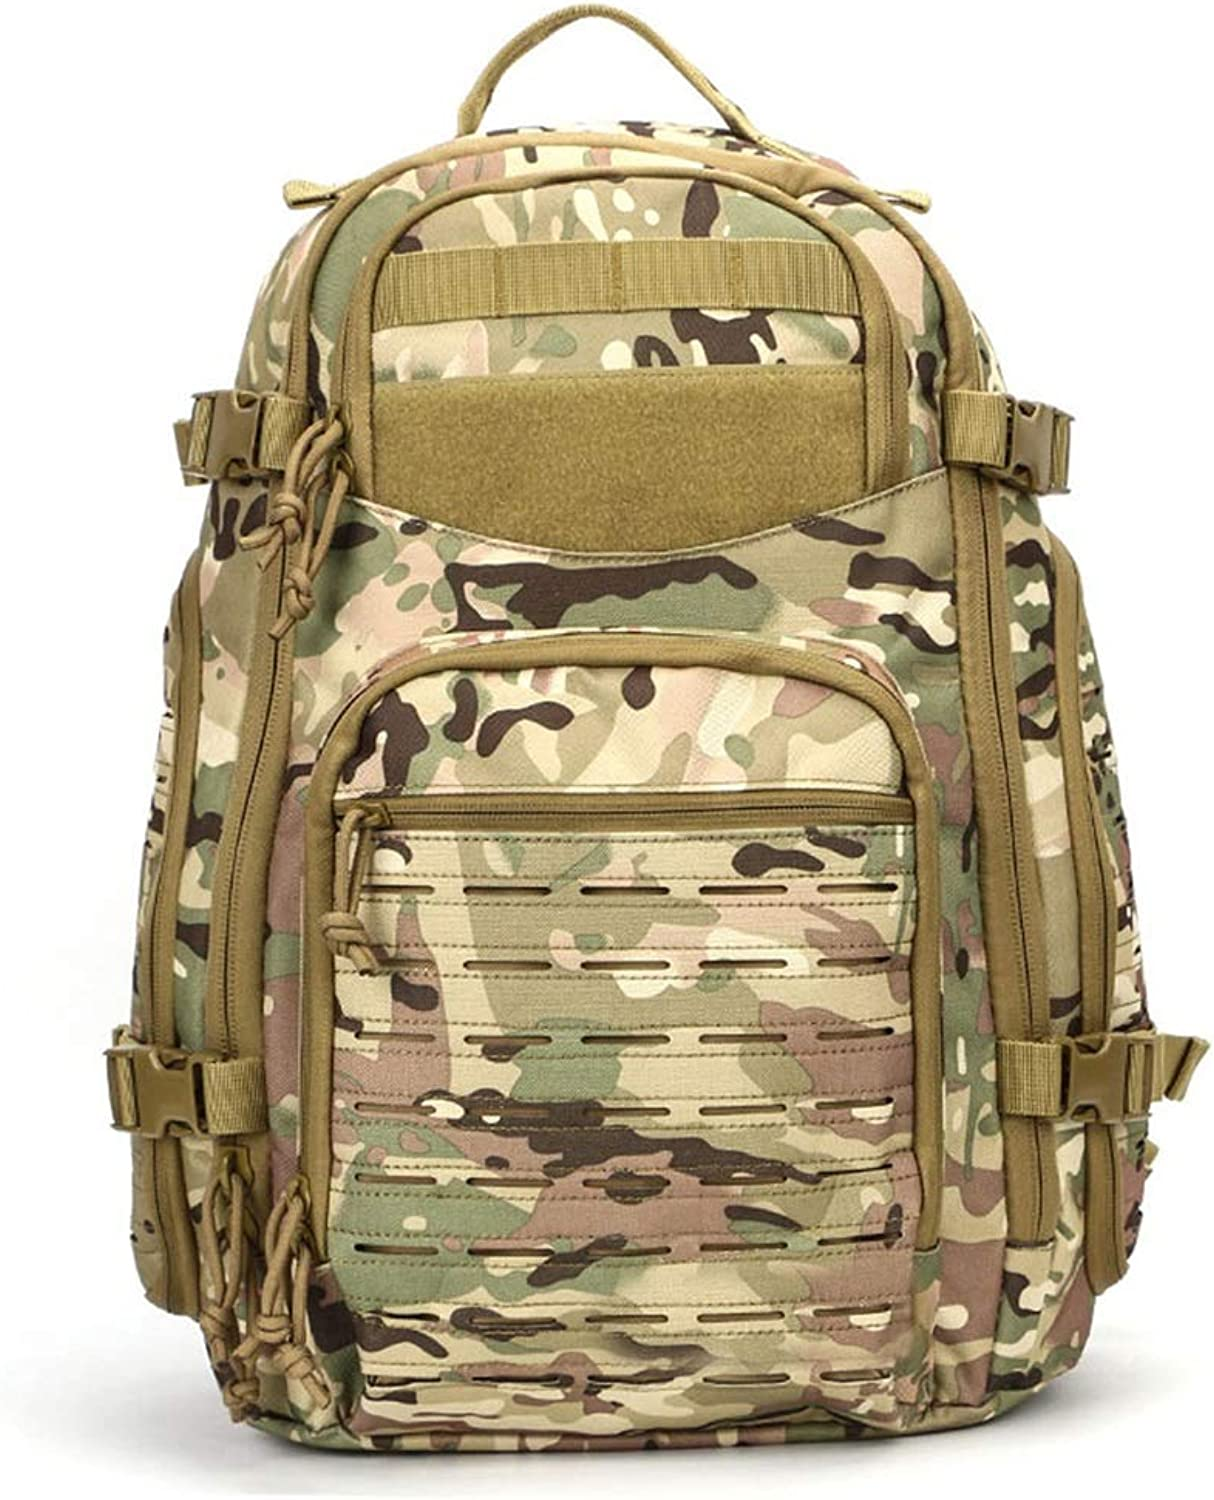 Tactical Backpack Hiking Camping Military Enthusiasts Backpack Large Capacity Outdoor Sports Backpack Men Riding Backpack (color   Camouflage)